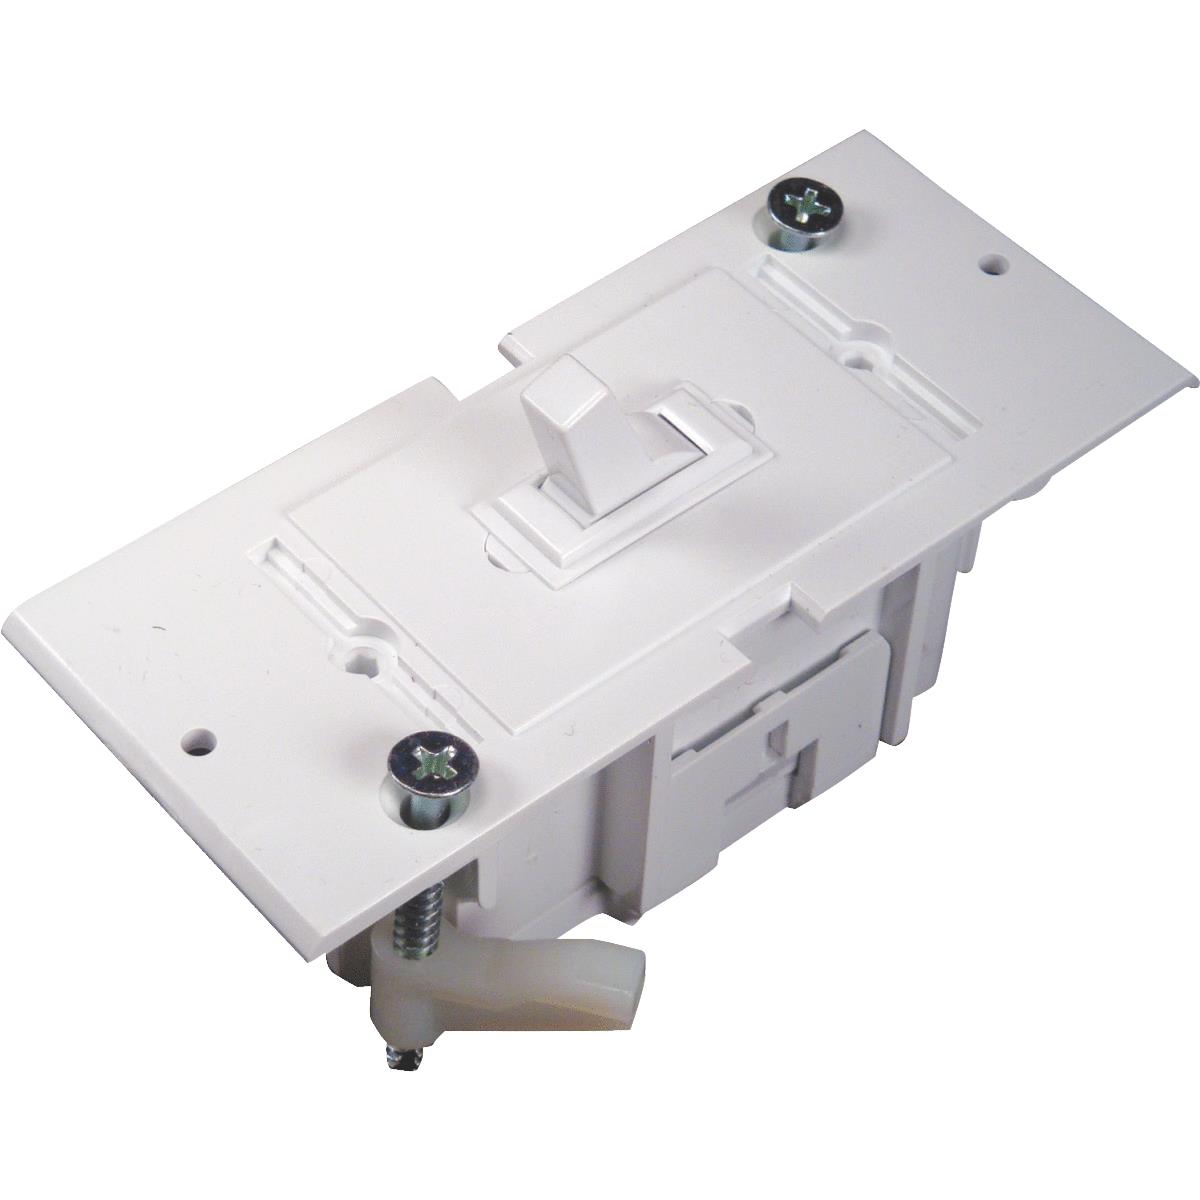 MOBILE HOME RV WALL ELECTRICAL LIGHT SWITCH BOX WHITE E-119C NEW IN PKG